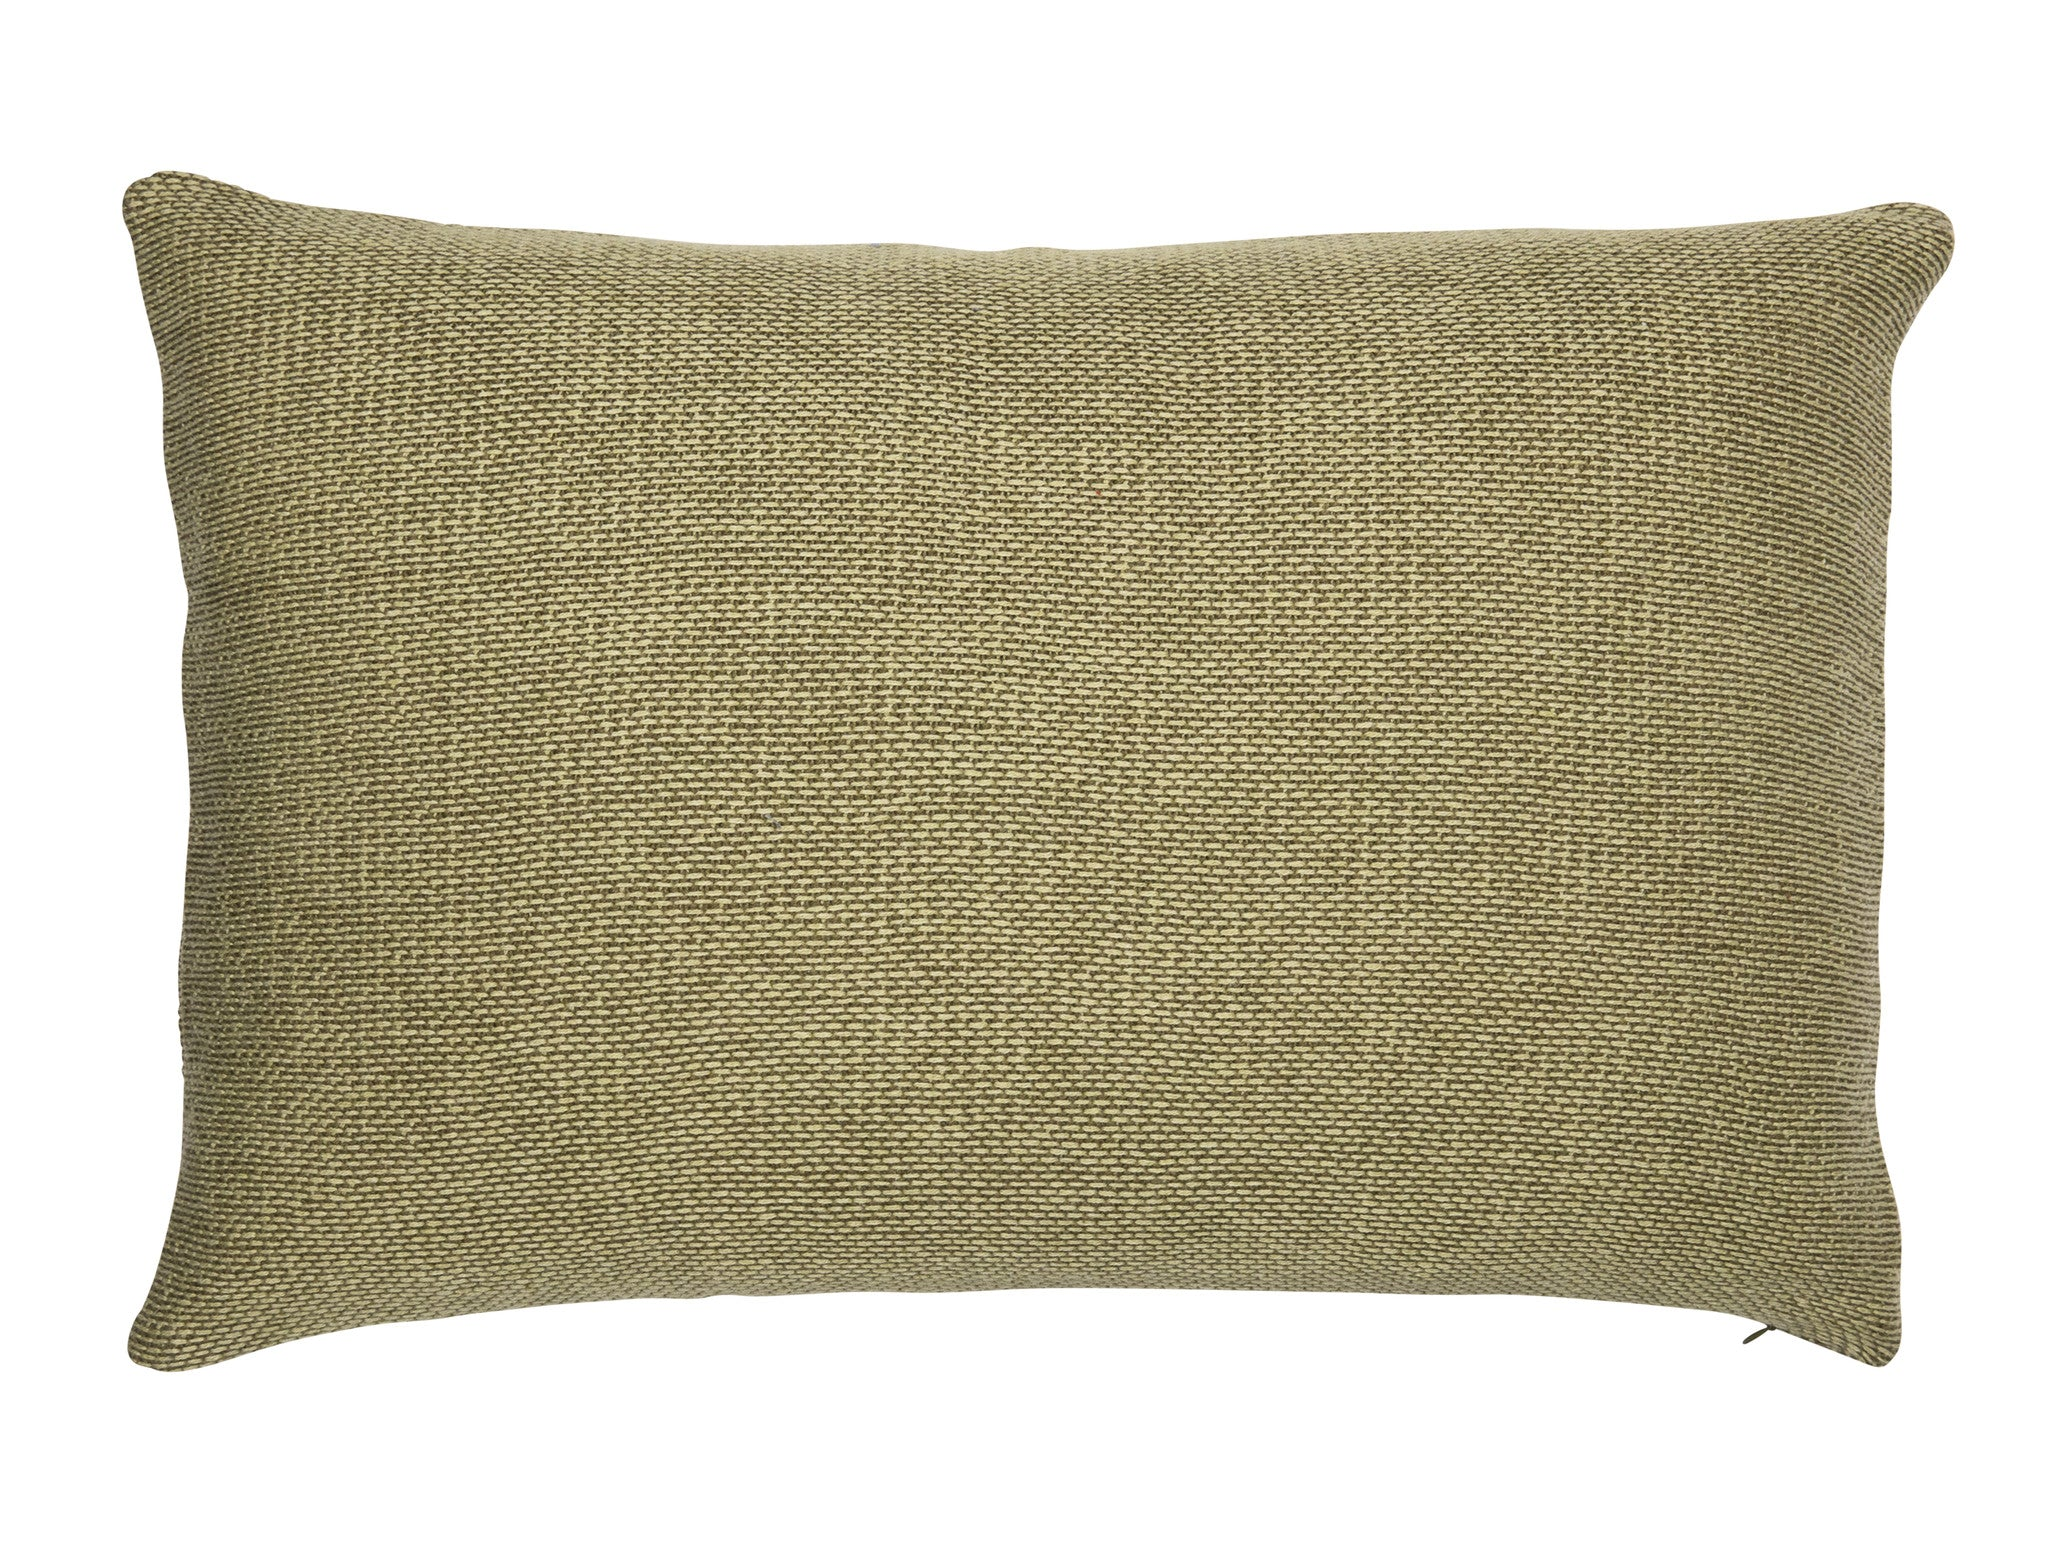 Beads cushion, 40X60 and 60X90, moss green